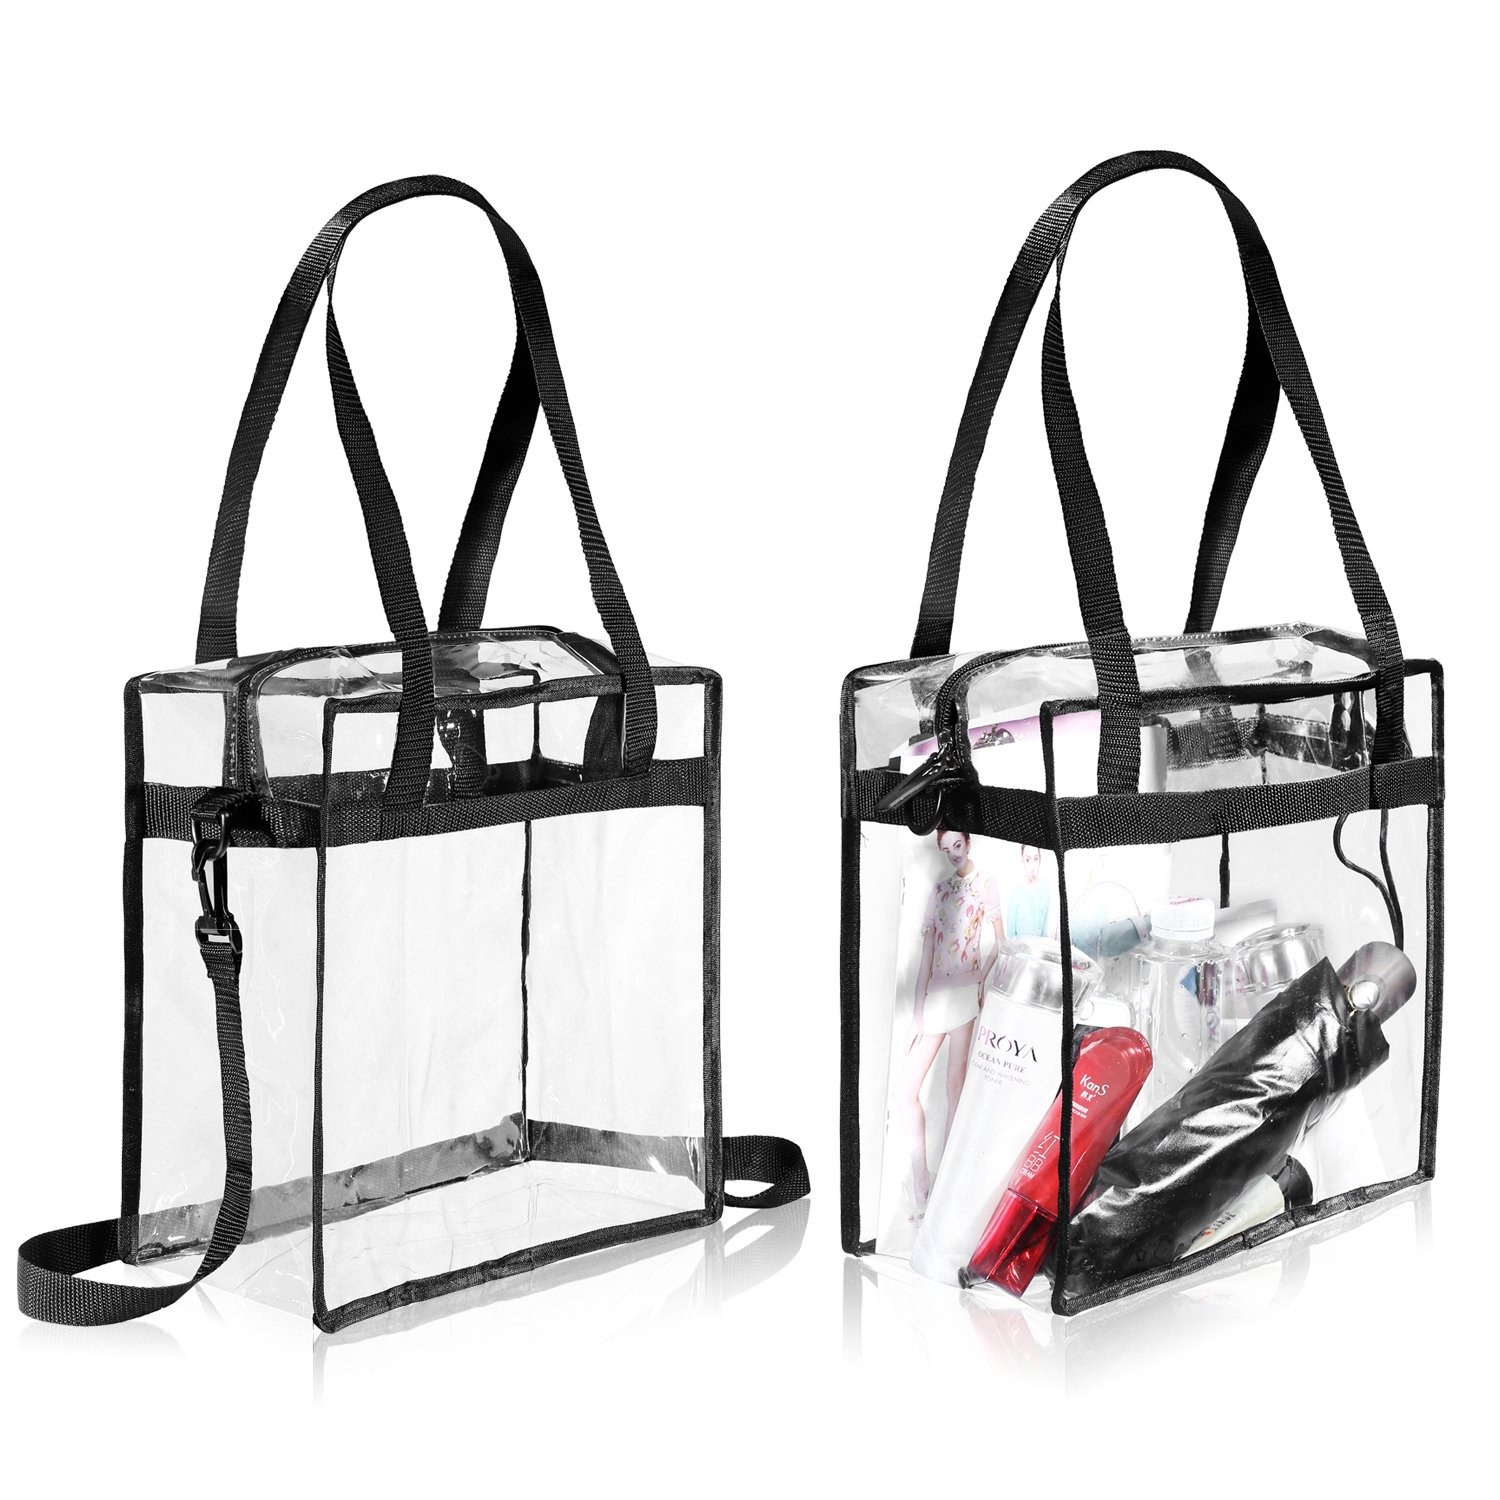 "Clear Bags NFL & PGA Stadium Approved - The Clear Tote Bag with Zipper Closure is Perfect for Work, Sports Games.Cross-Body Messenger Shoulder Bag w Adjustable Strap -12"" X 12"" X 6"" (Two Bag) by BAGAIL (Image #1)"